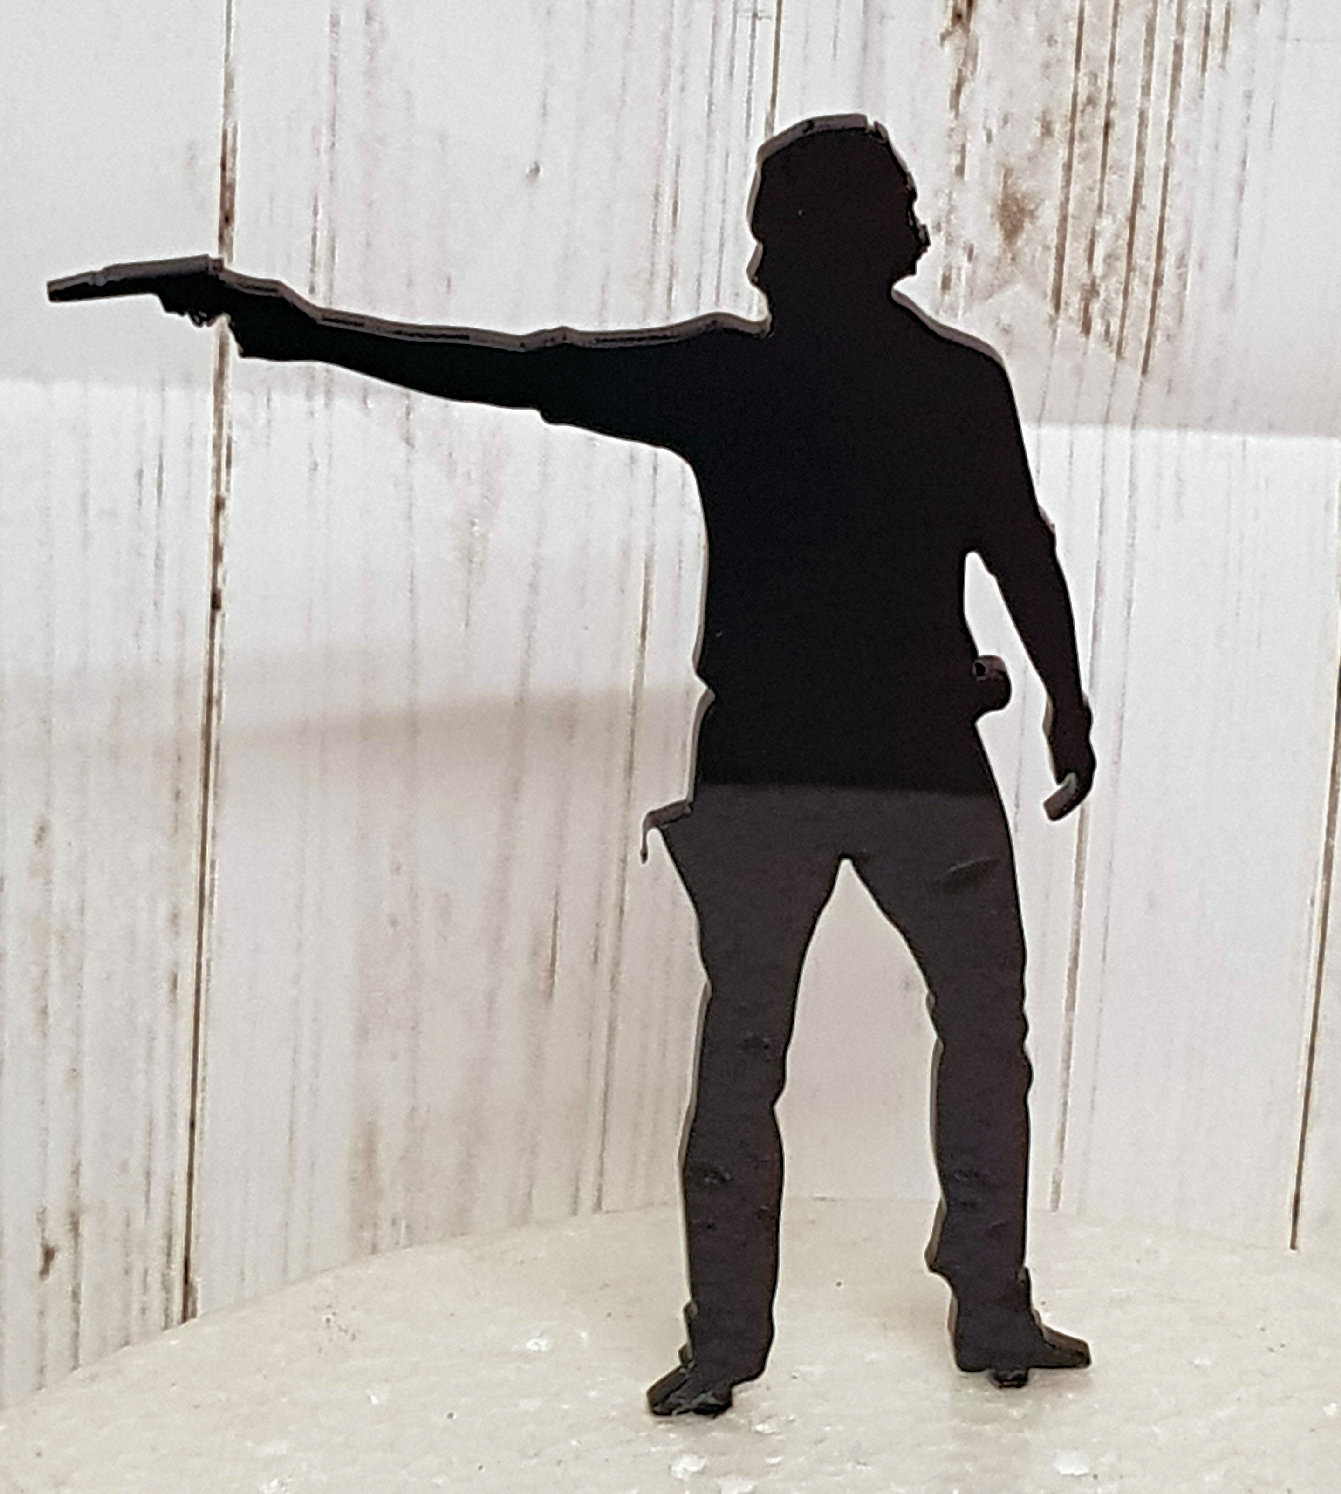 Rick from the walking dead acrylic cake topper